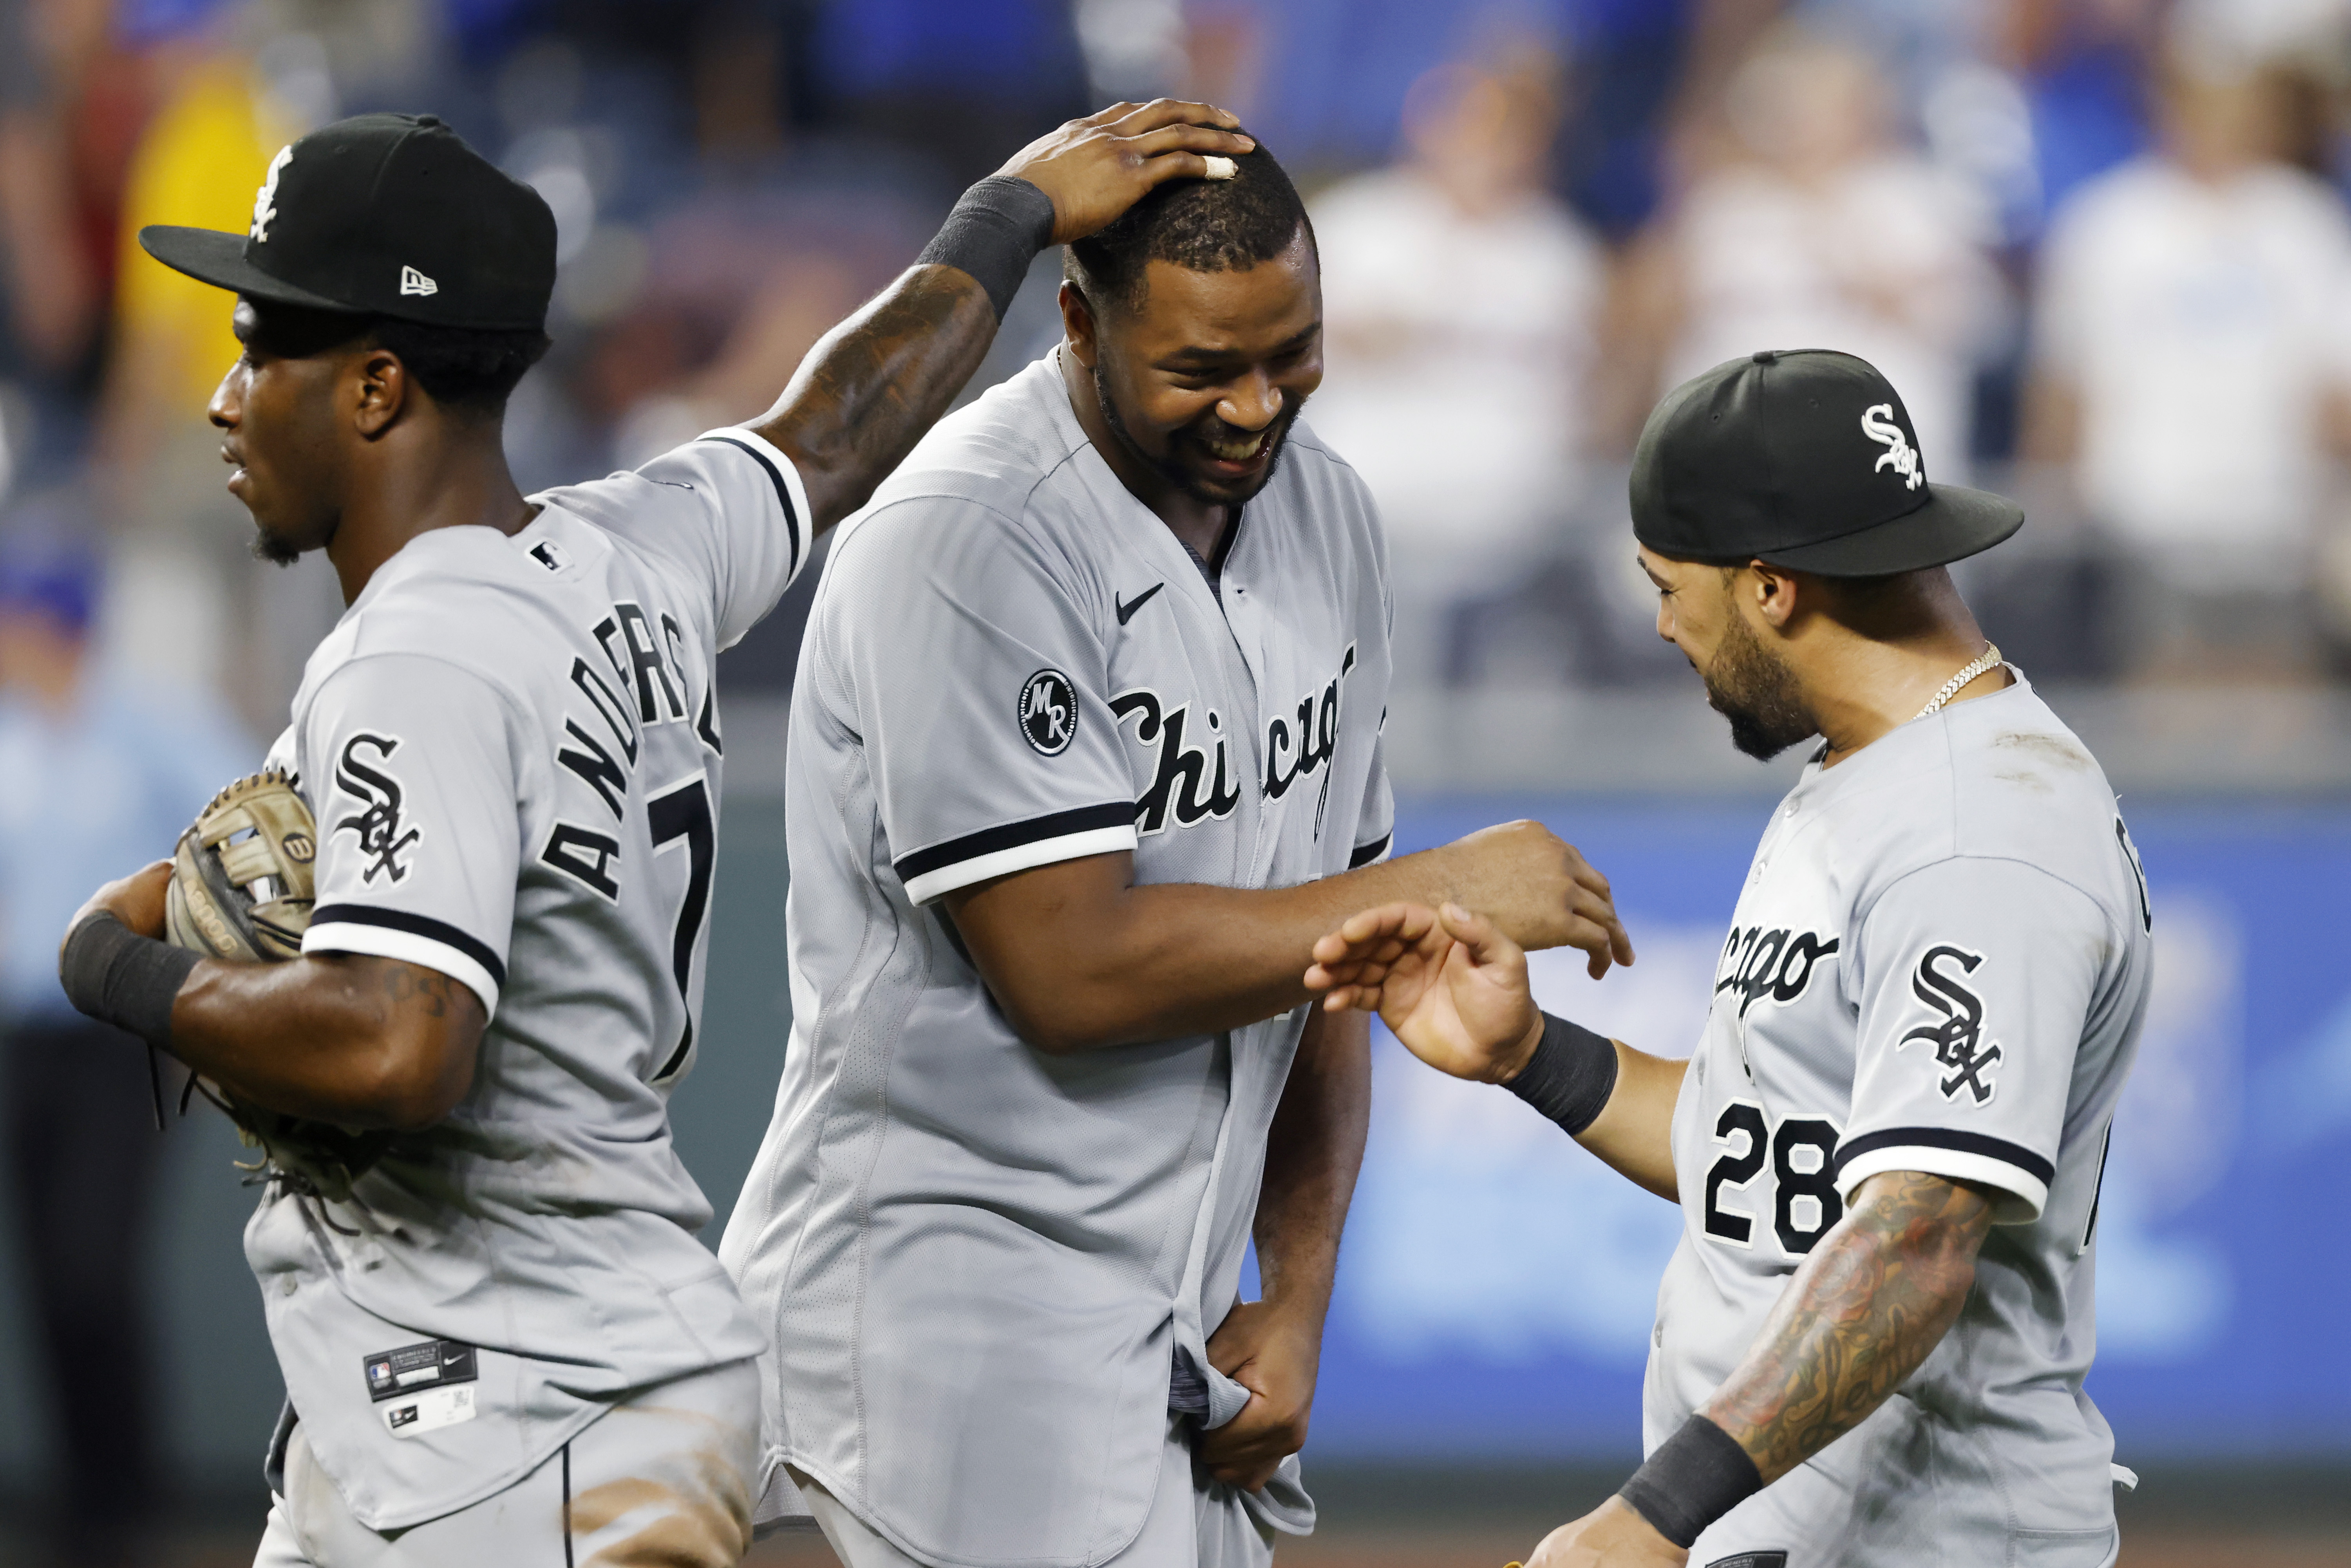 The White Sox' Eloy Jimenez, center, celebrates with teammates Tim Anderson and Leury Garcia after a game earlier this season.